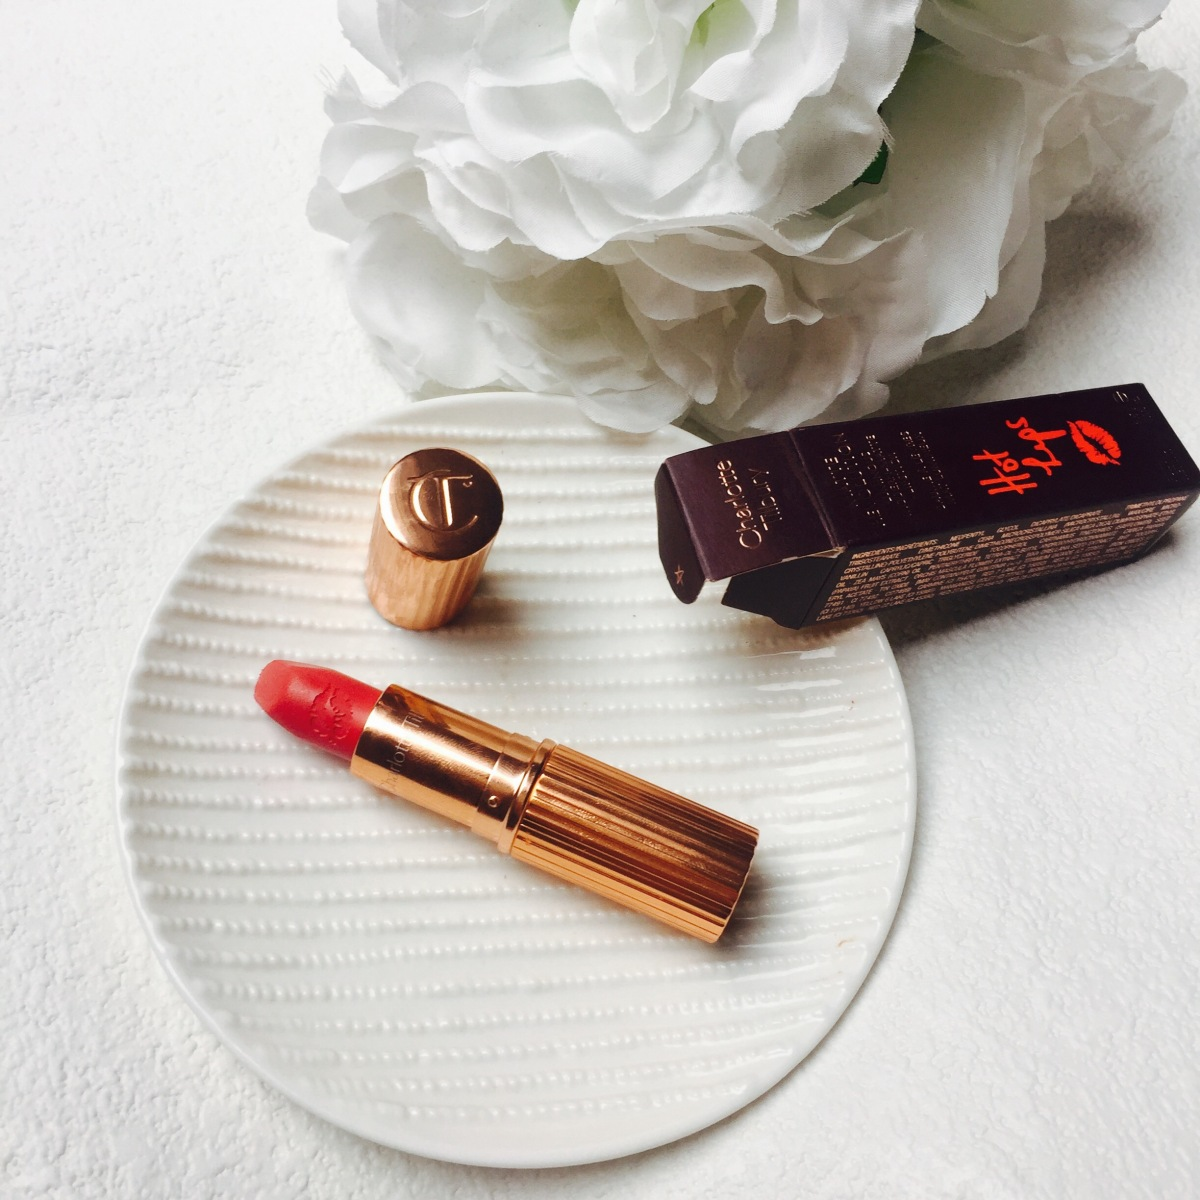 Charlotte Tilbury - Hot lips